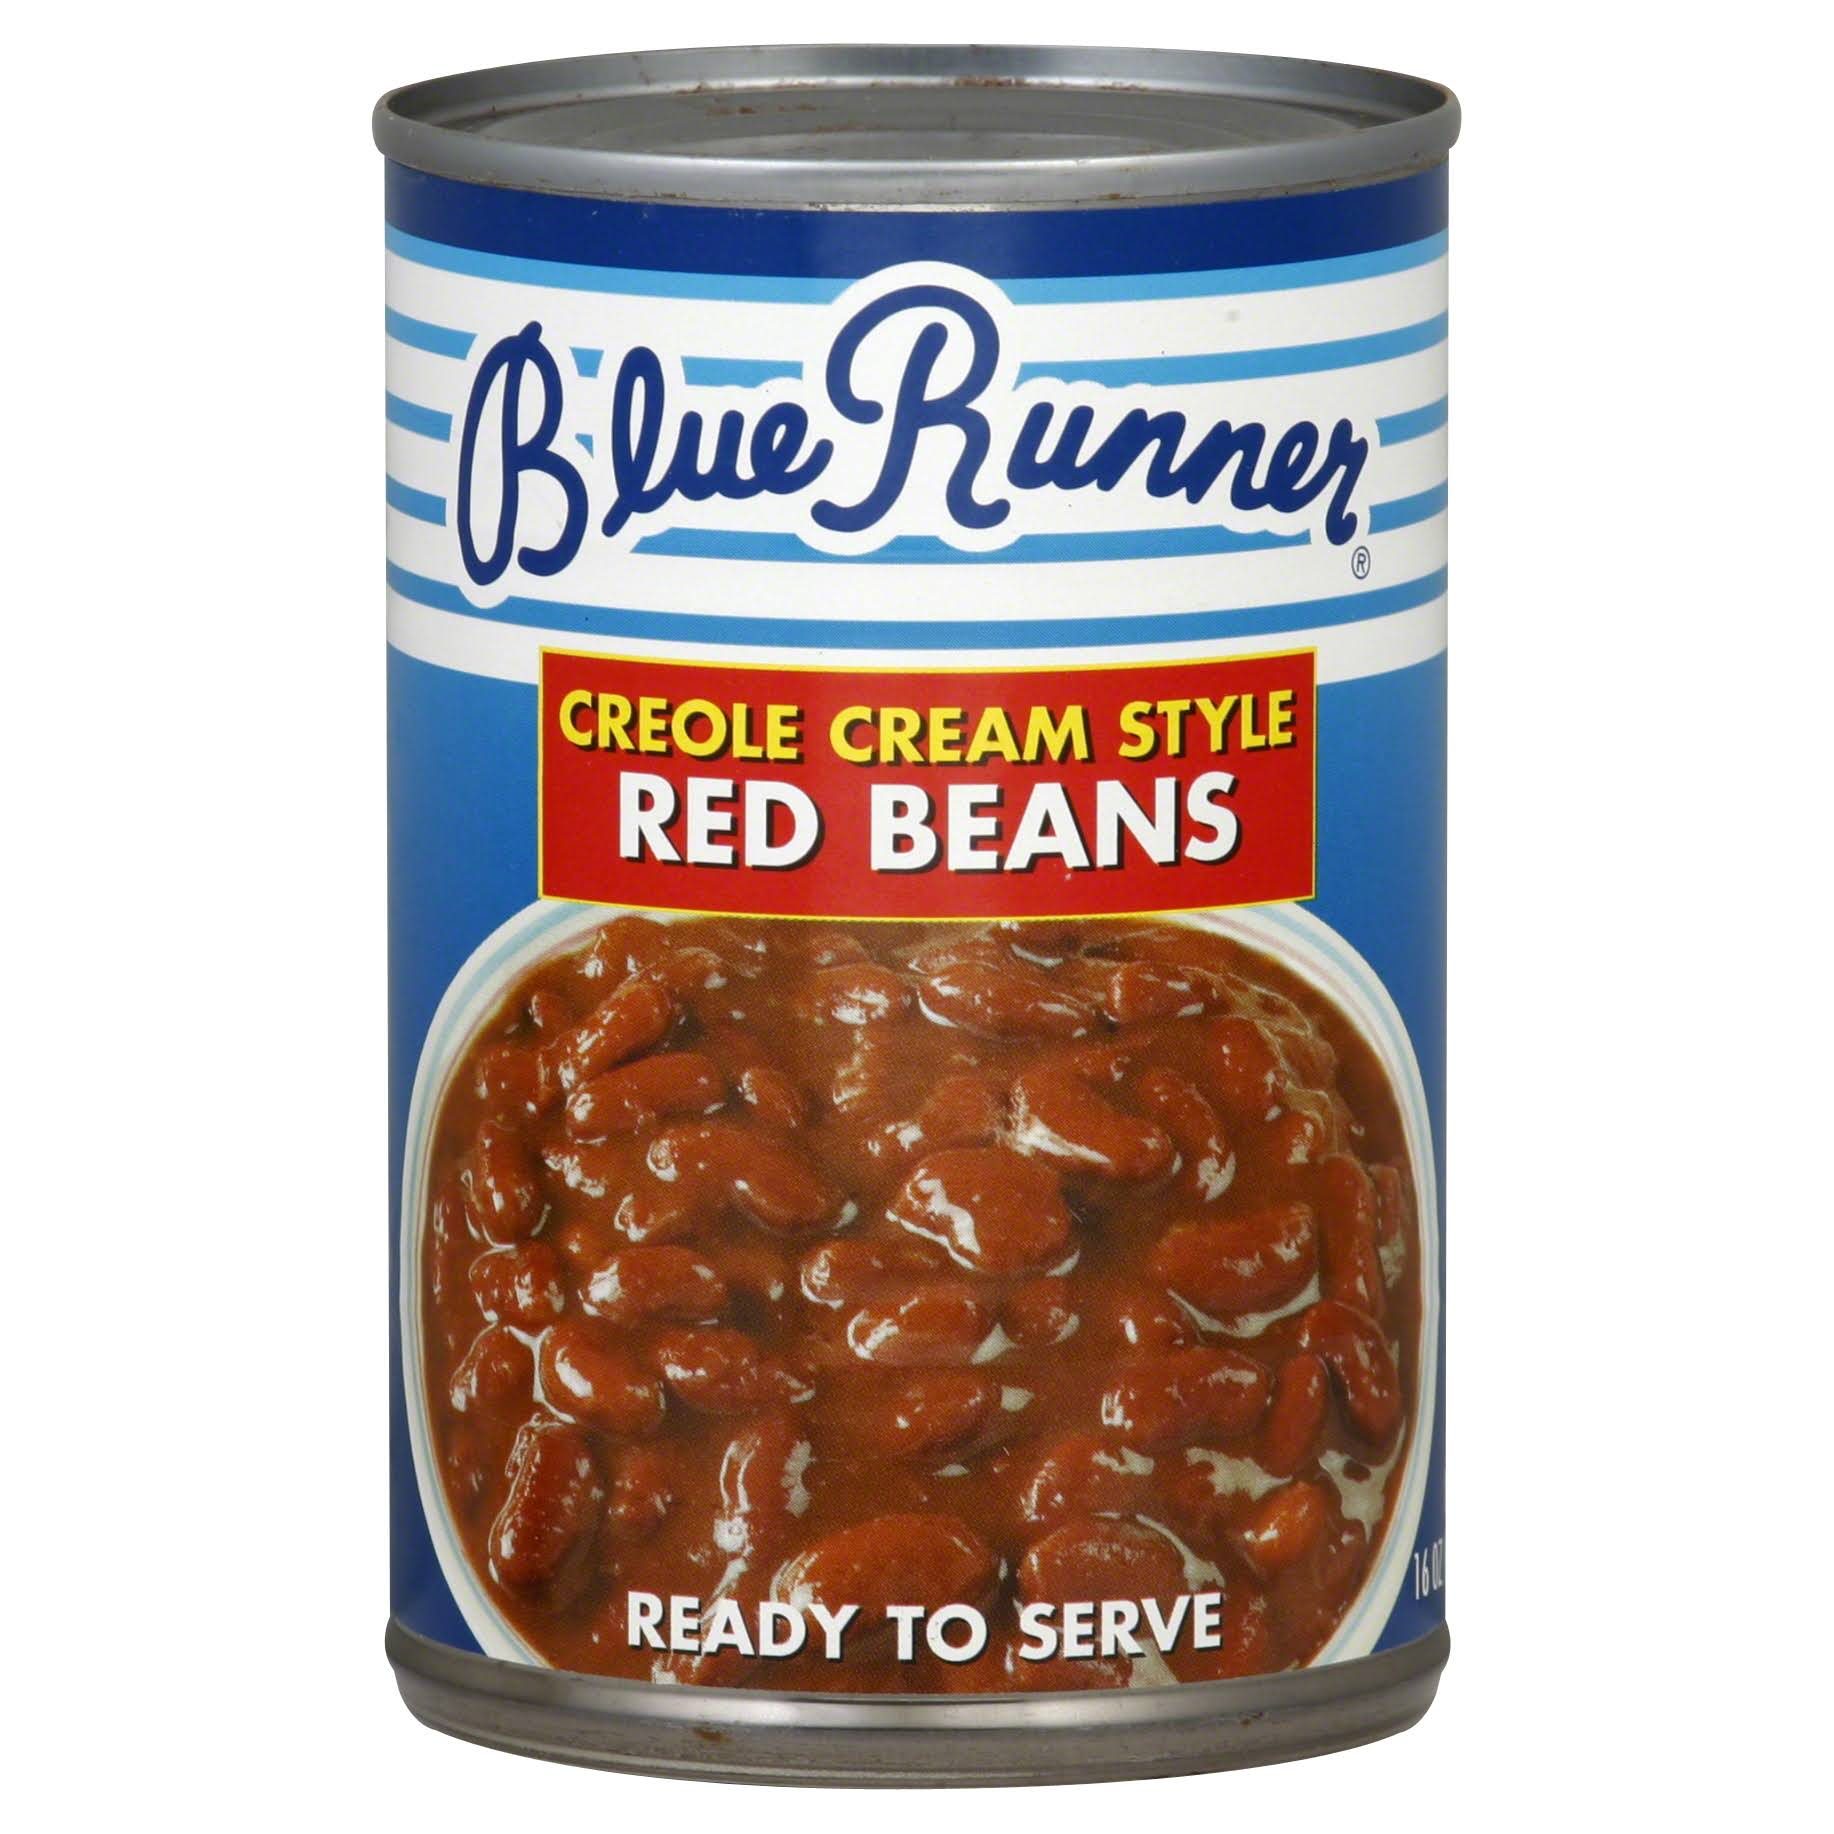 Blue Runner Creole Cream Style Red Beans - 16 oz